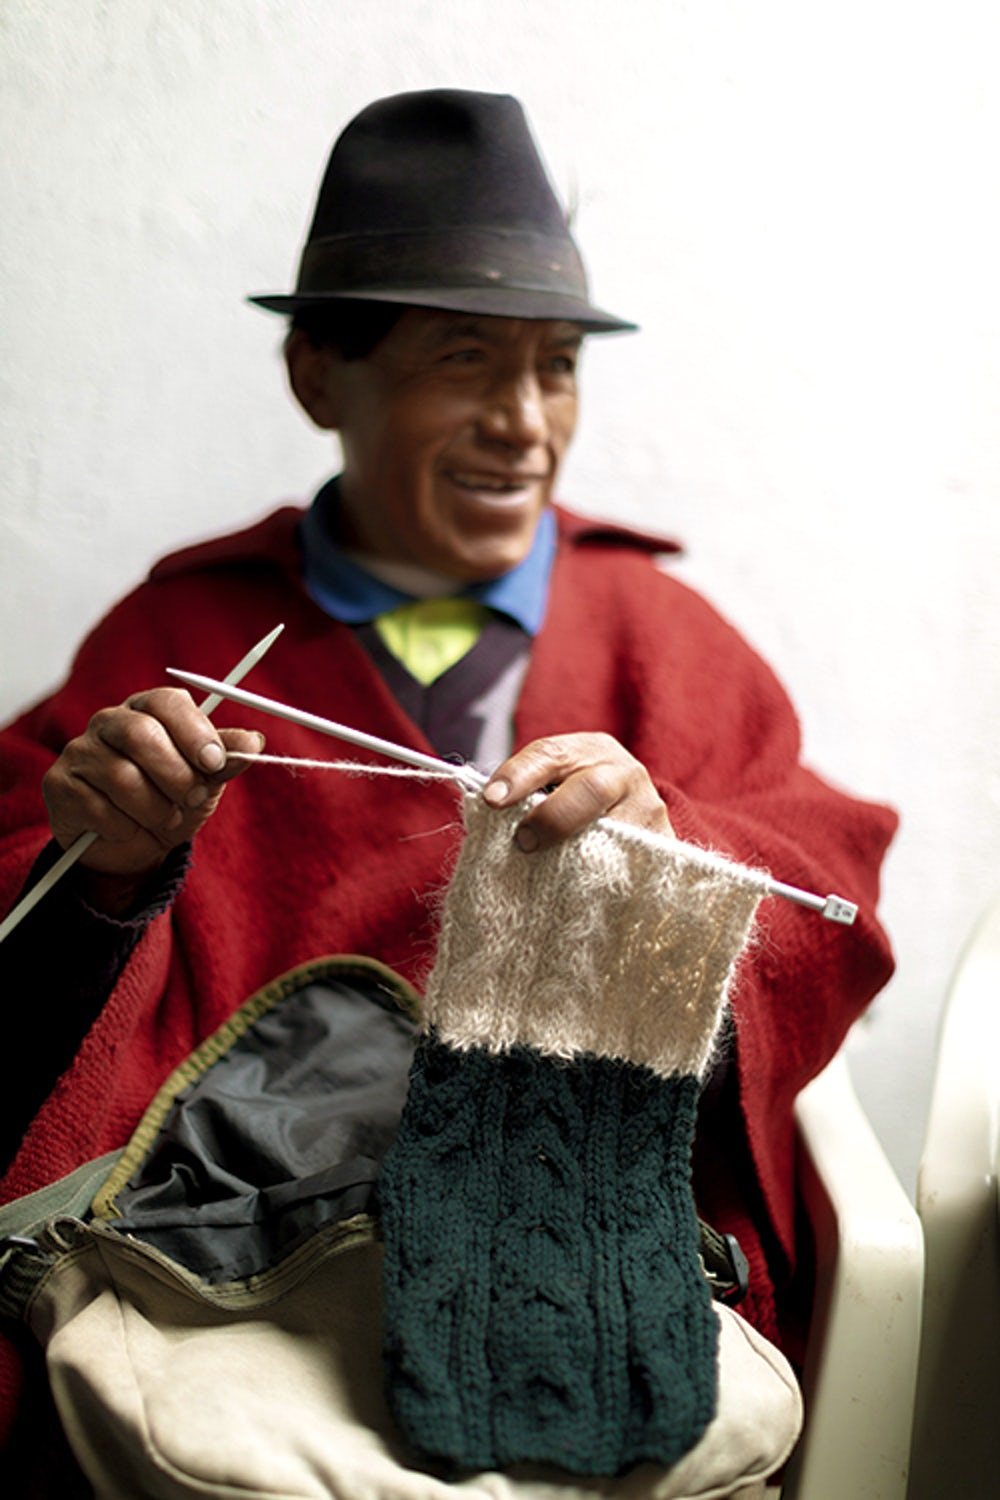 José Pedro Pallo Cuzco (65) learned how to knit at workshops organized by Heifer.